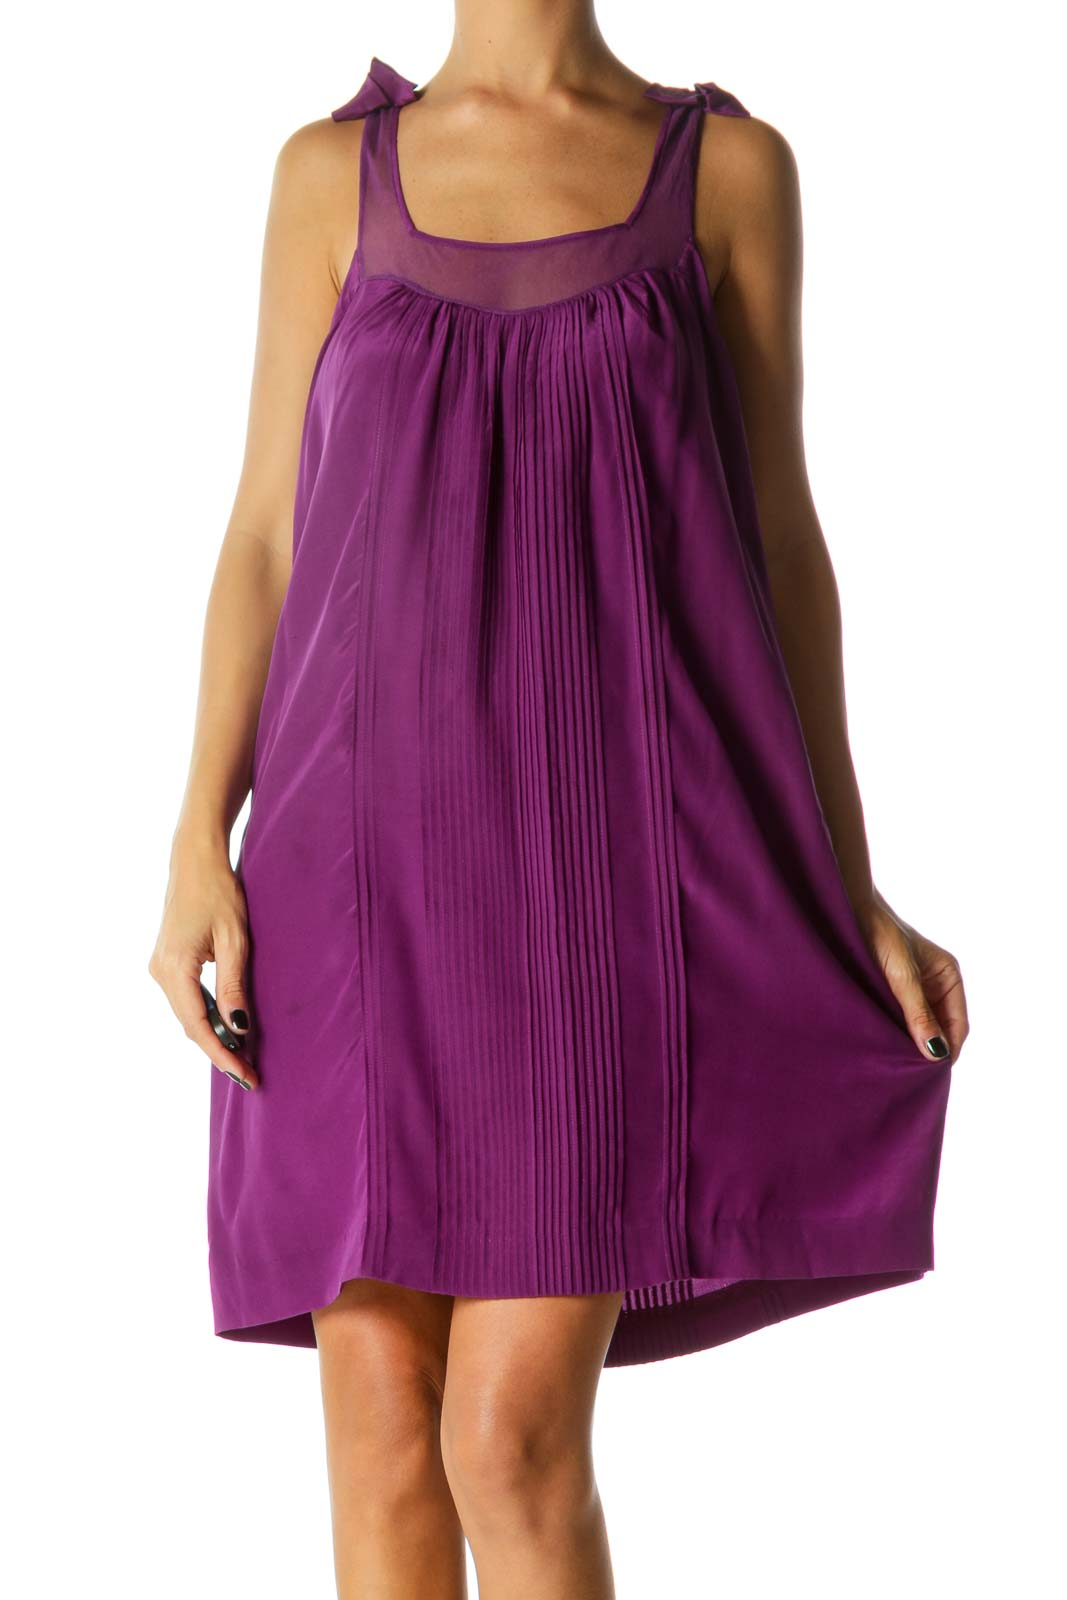 Purple Bows Detail Square Neck Pleated Dress Front